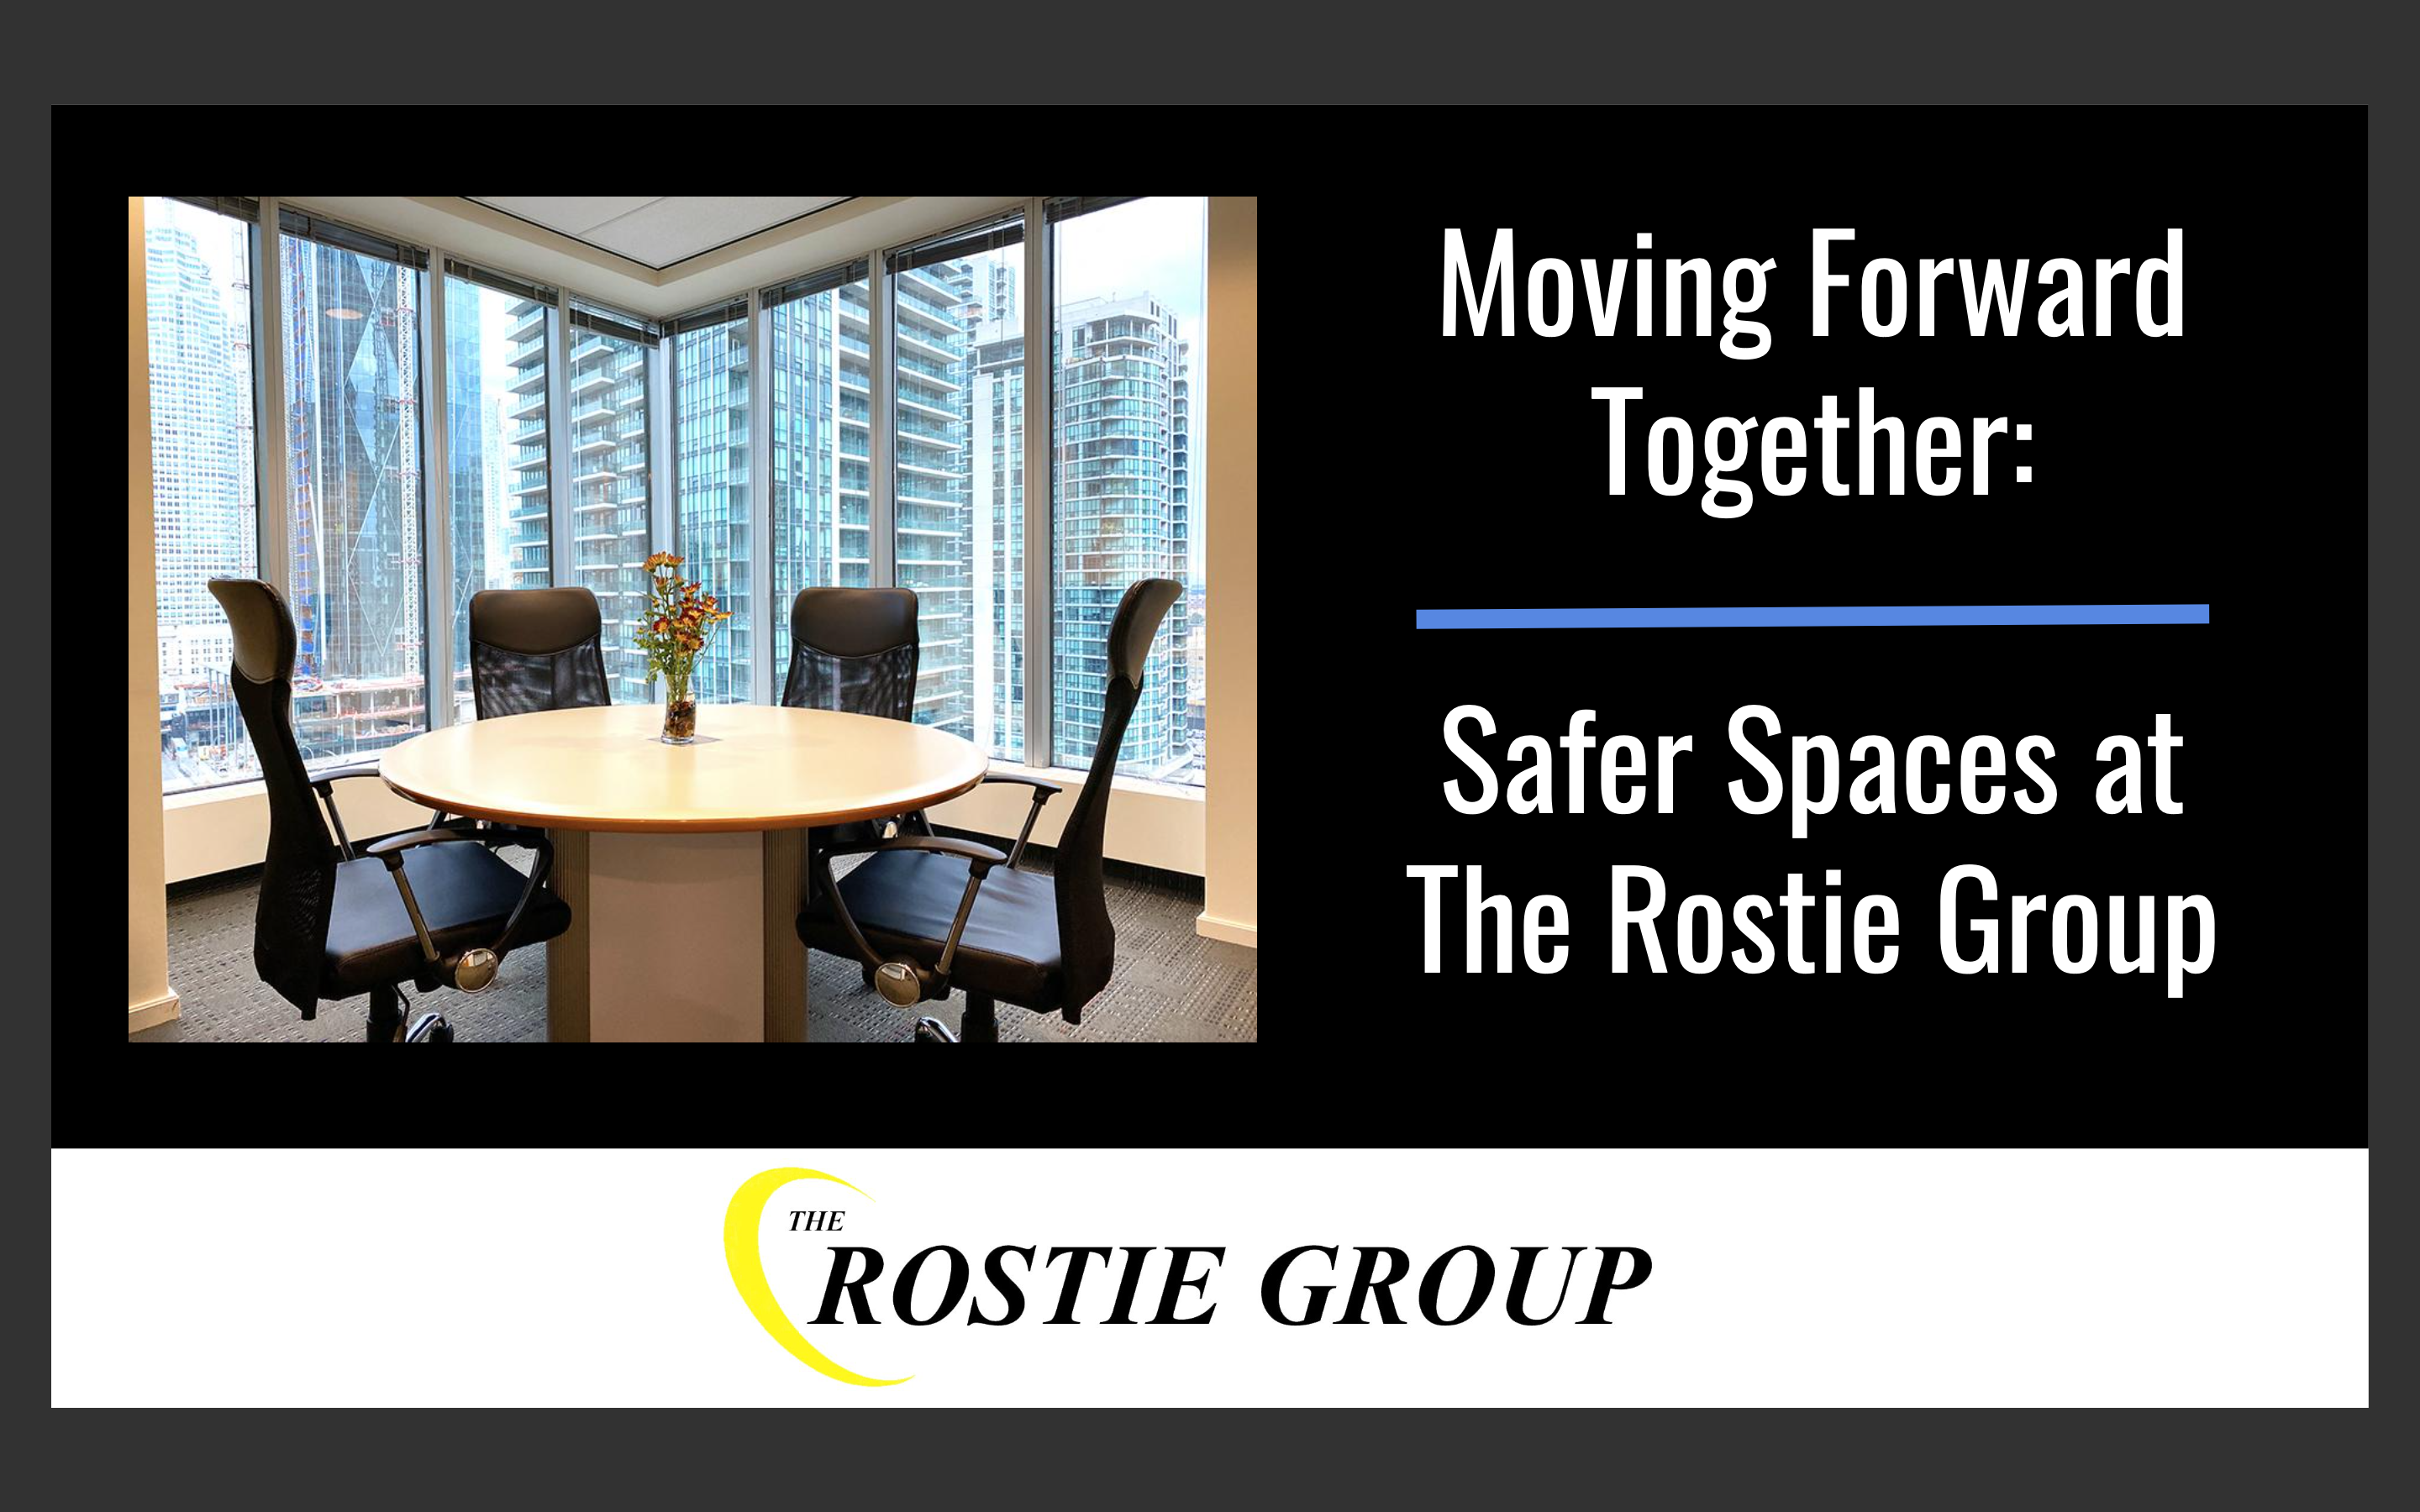 Working to Get Back to Work: The Rostie Group's Return to Work Plan